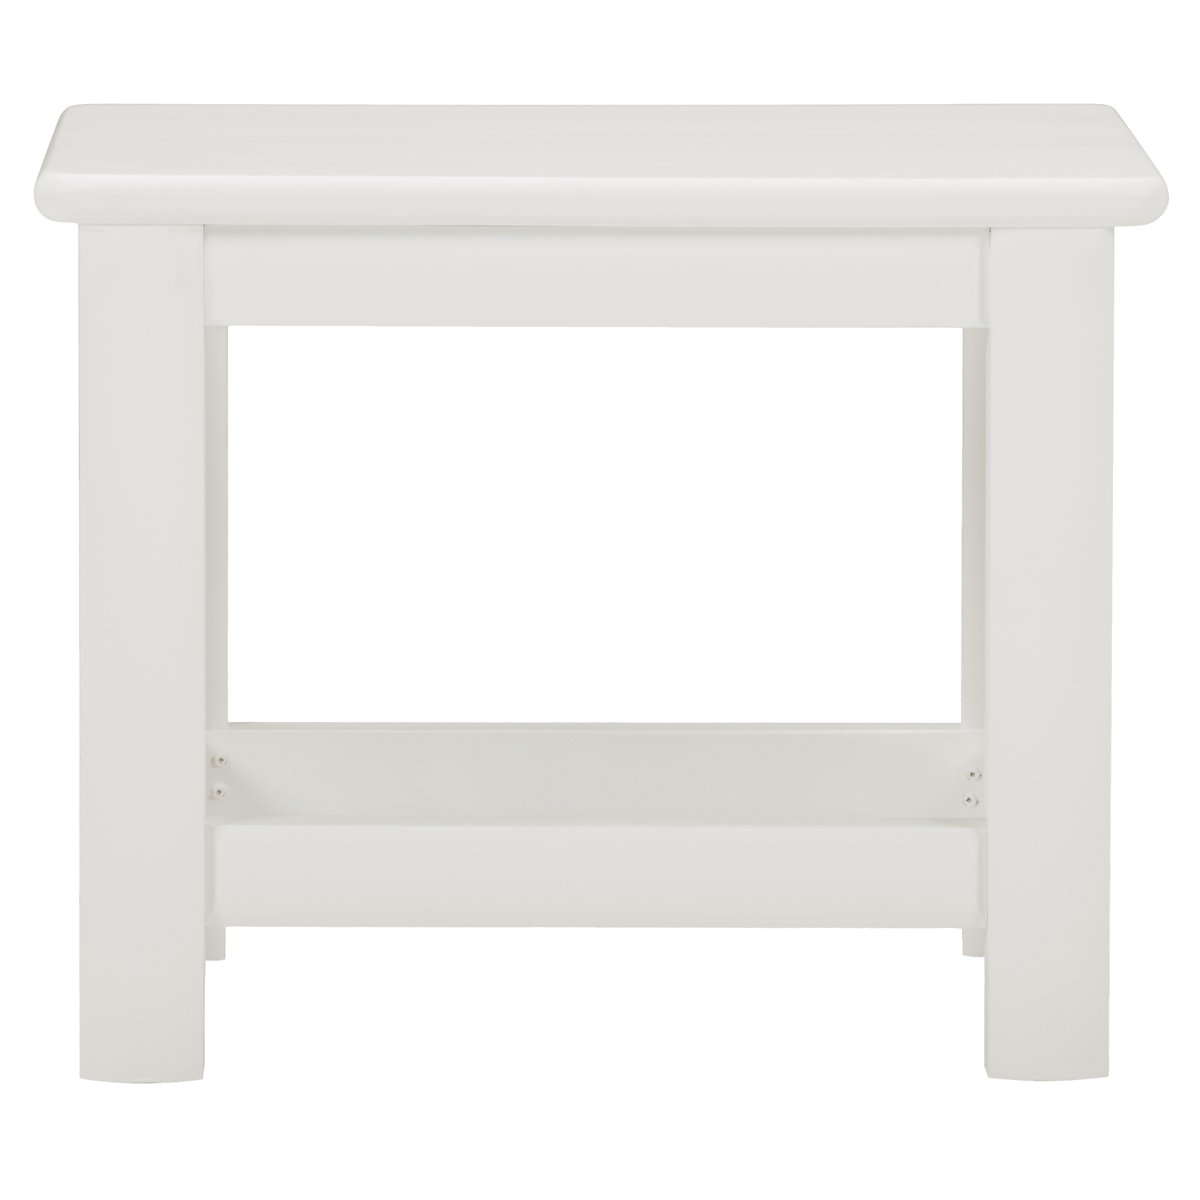 Laguna White Wood Bench